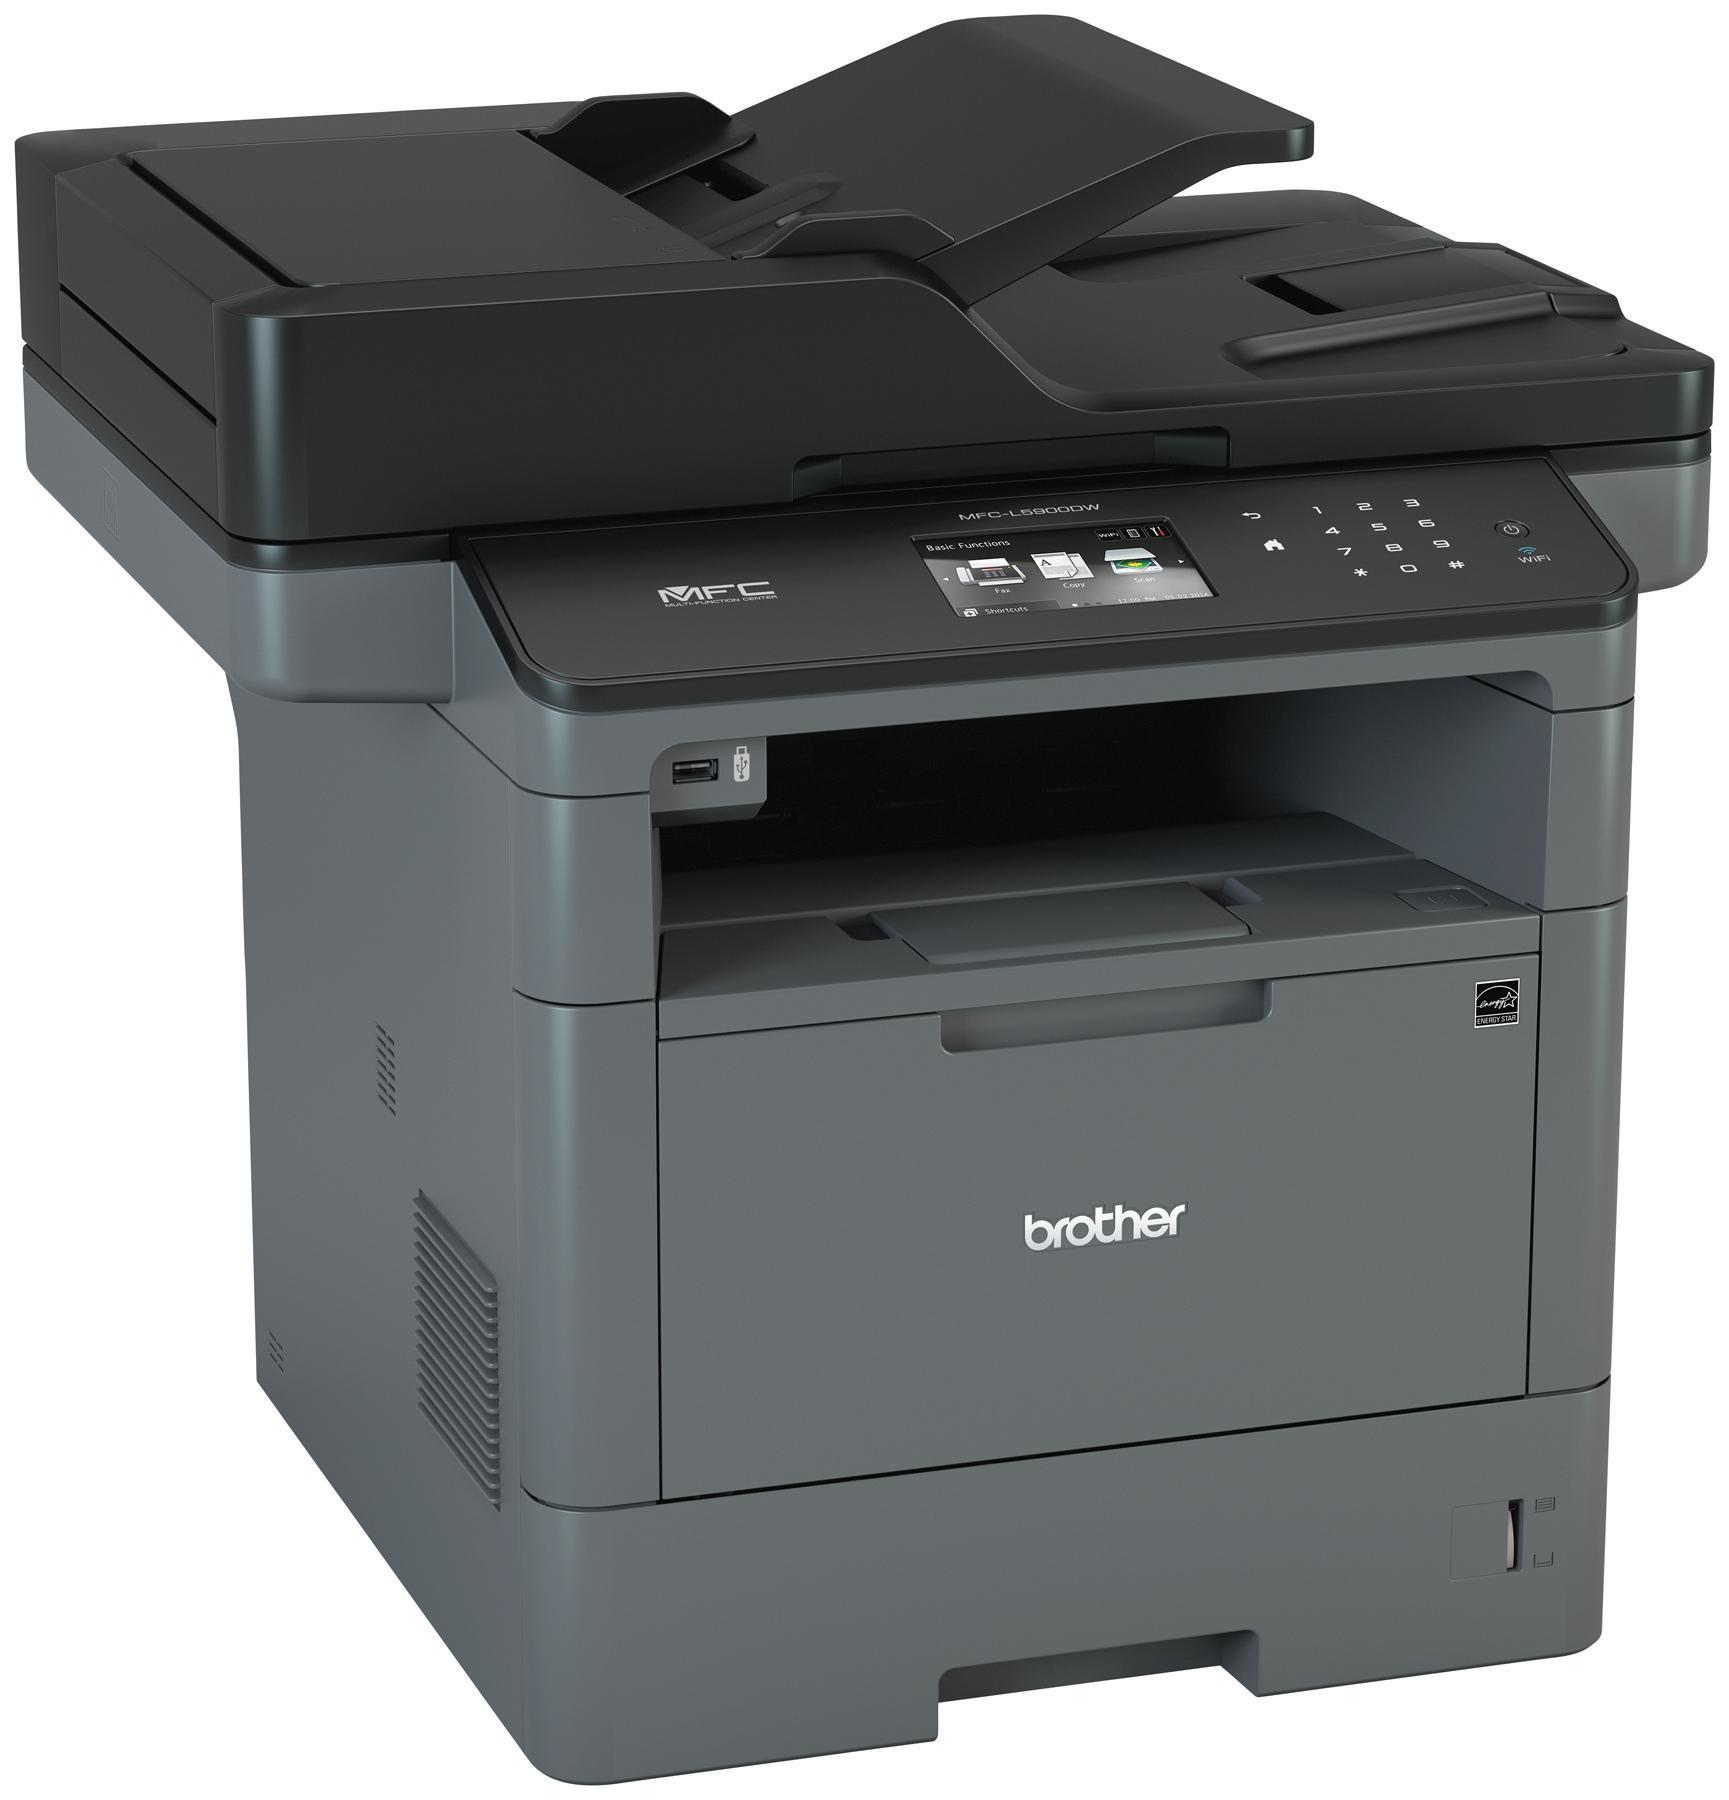 brother printer hl 2040 driver download for windows 7